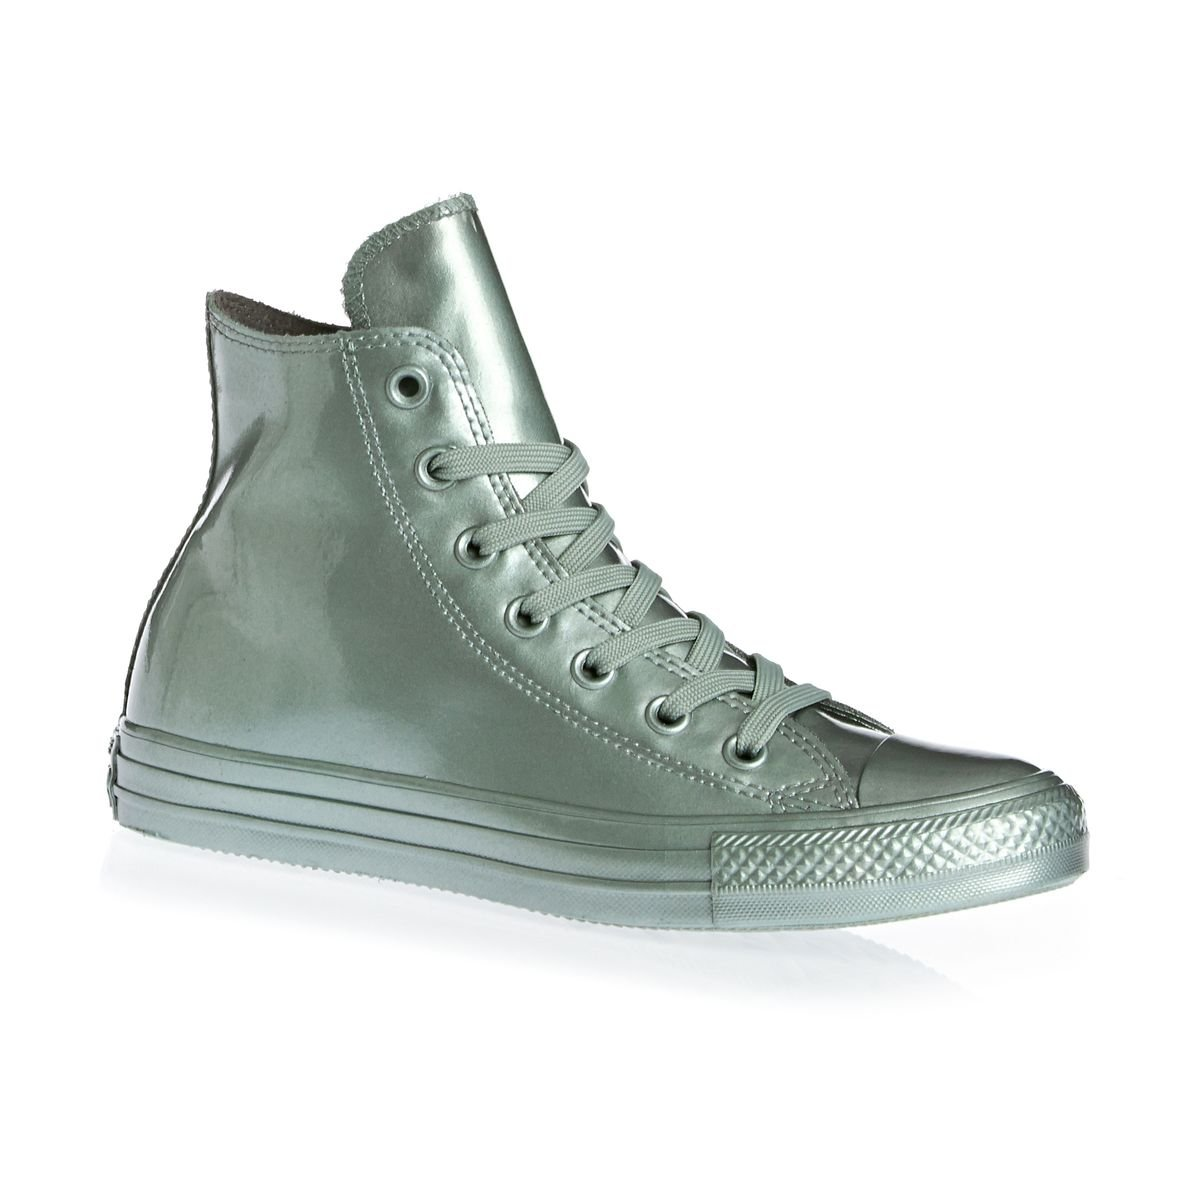 Argent Converse All Star Hi Chaussures Chaussures Chaussures Montantes pour Femmes 460